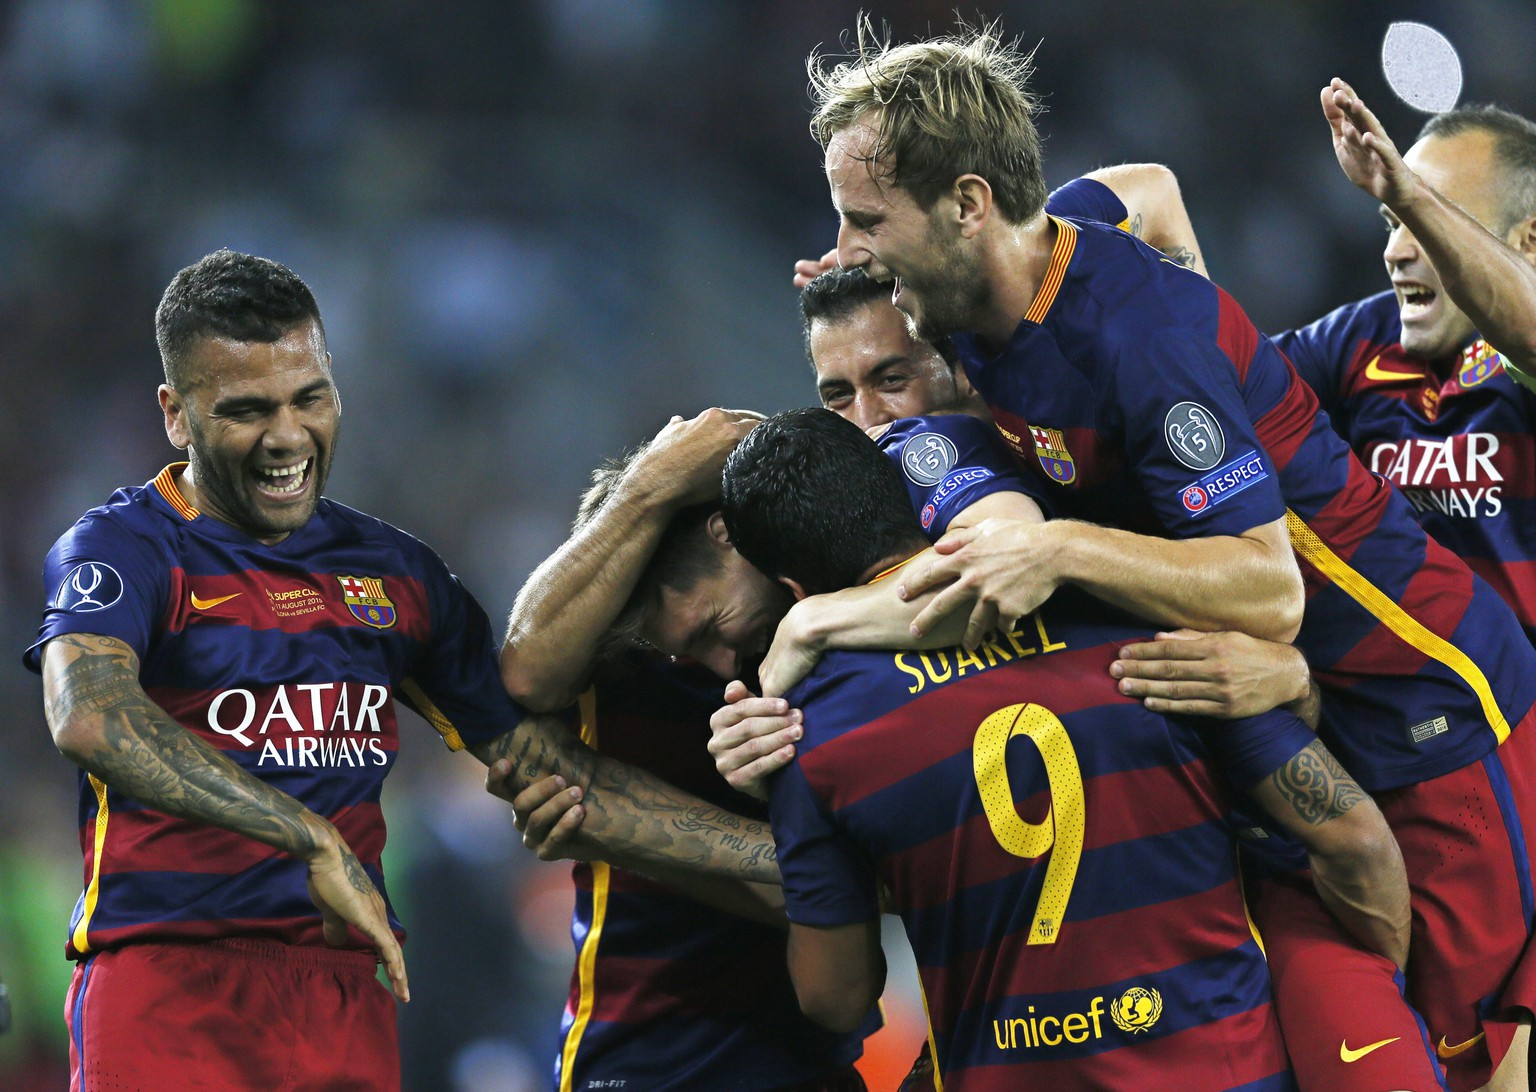 epa04880323 Players of Barcelona celebrate after scoring a goal during the UEFA Super Cup match between FC Barcelona and Sevilla at Boris Paichadze Dinamo Arena in Tbilisi, Georgia, 11 August 2015.  EPA/YURI KOCHETKOV